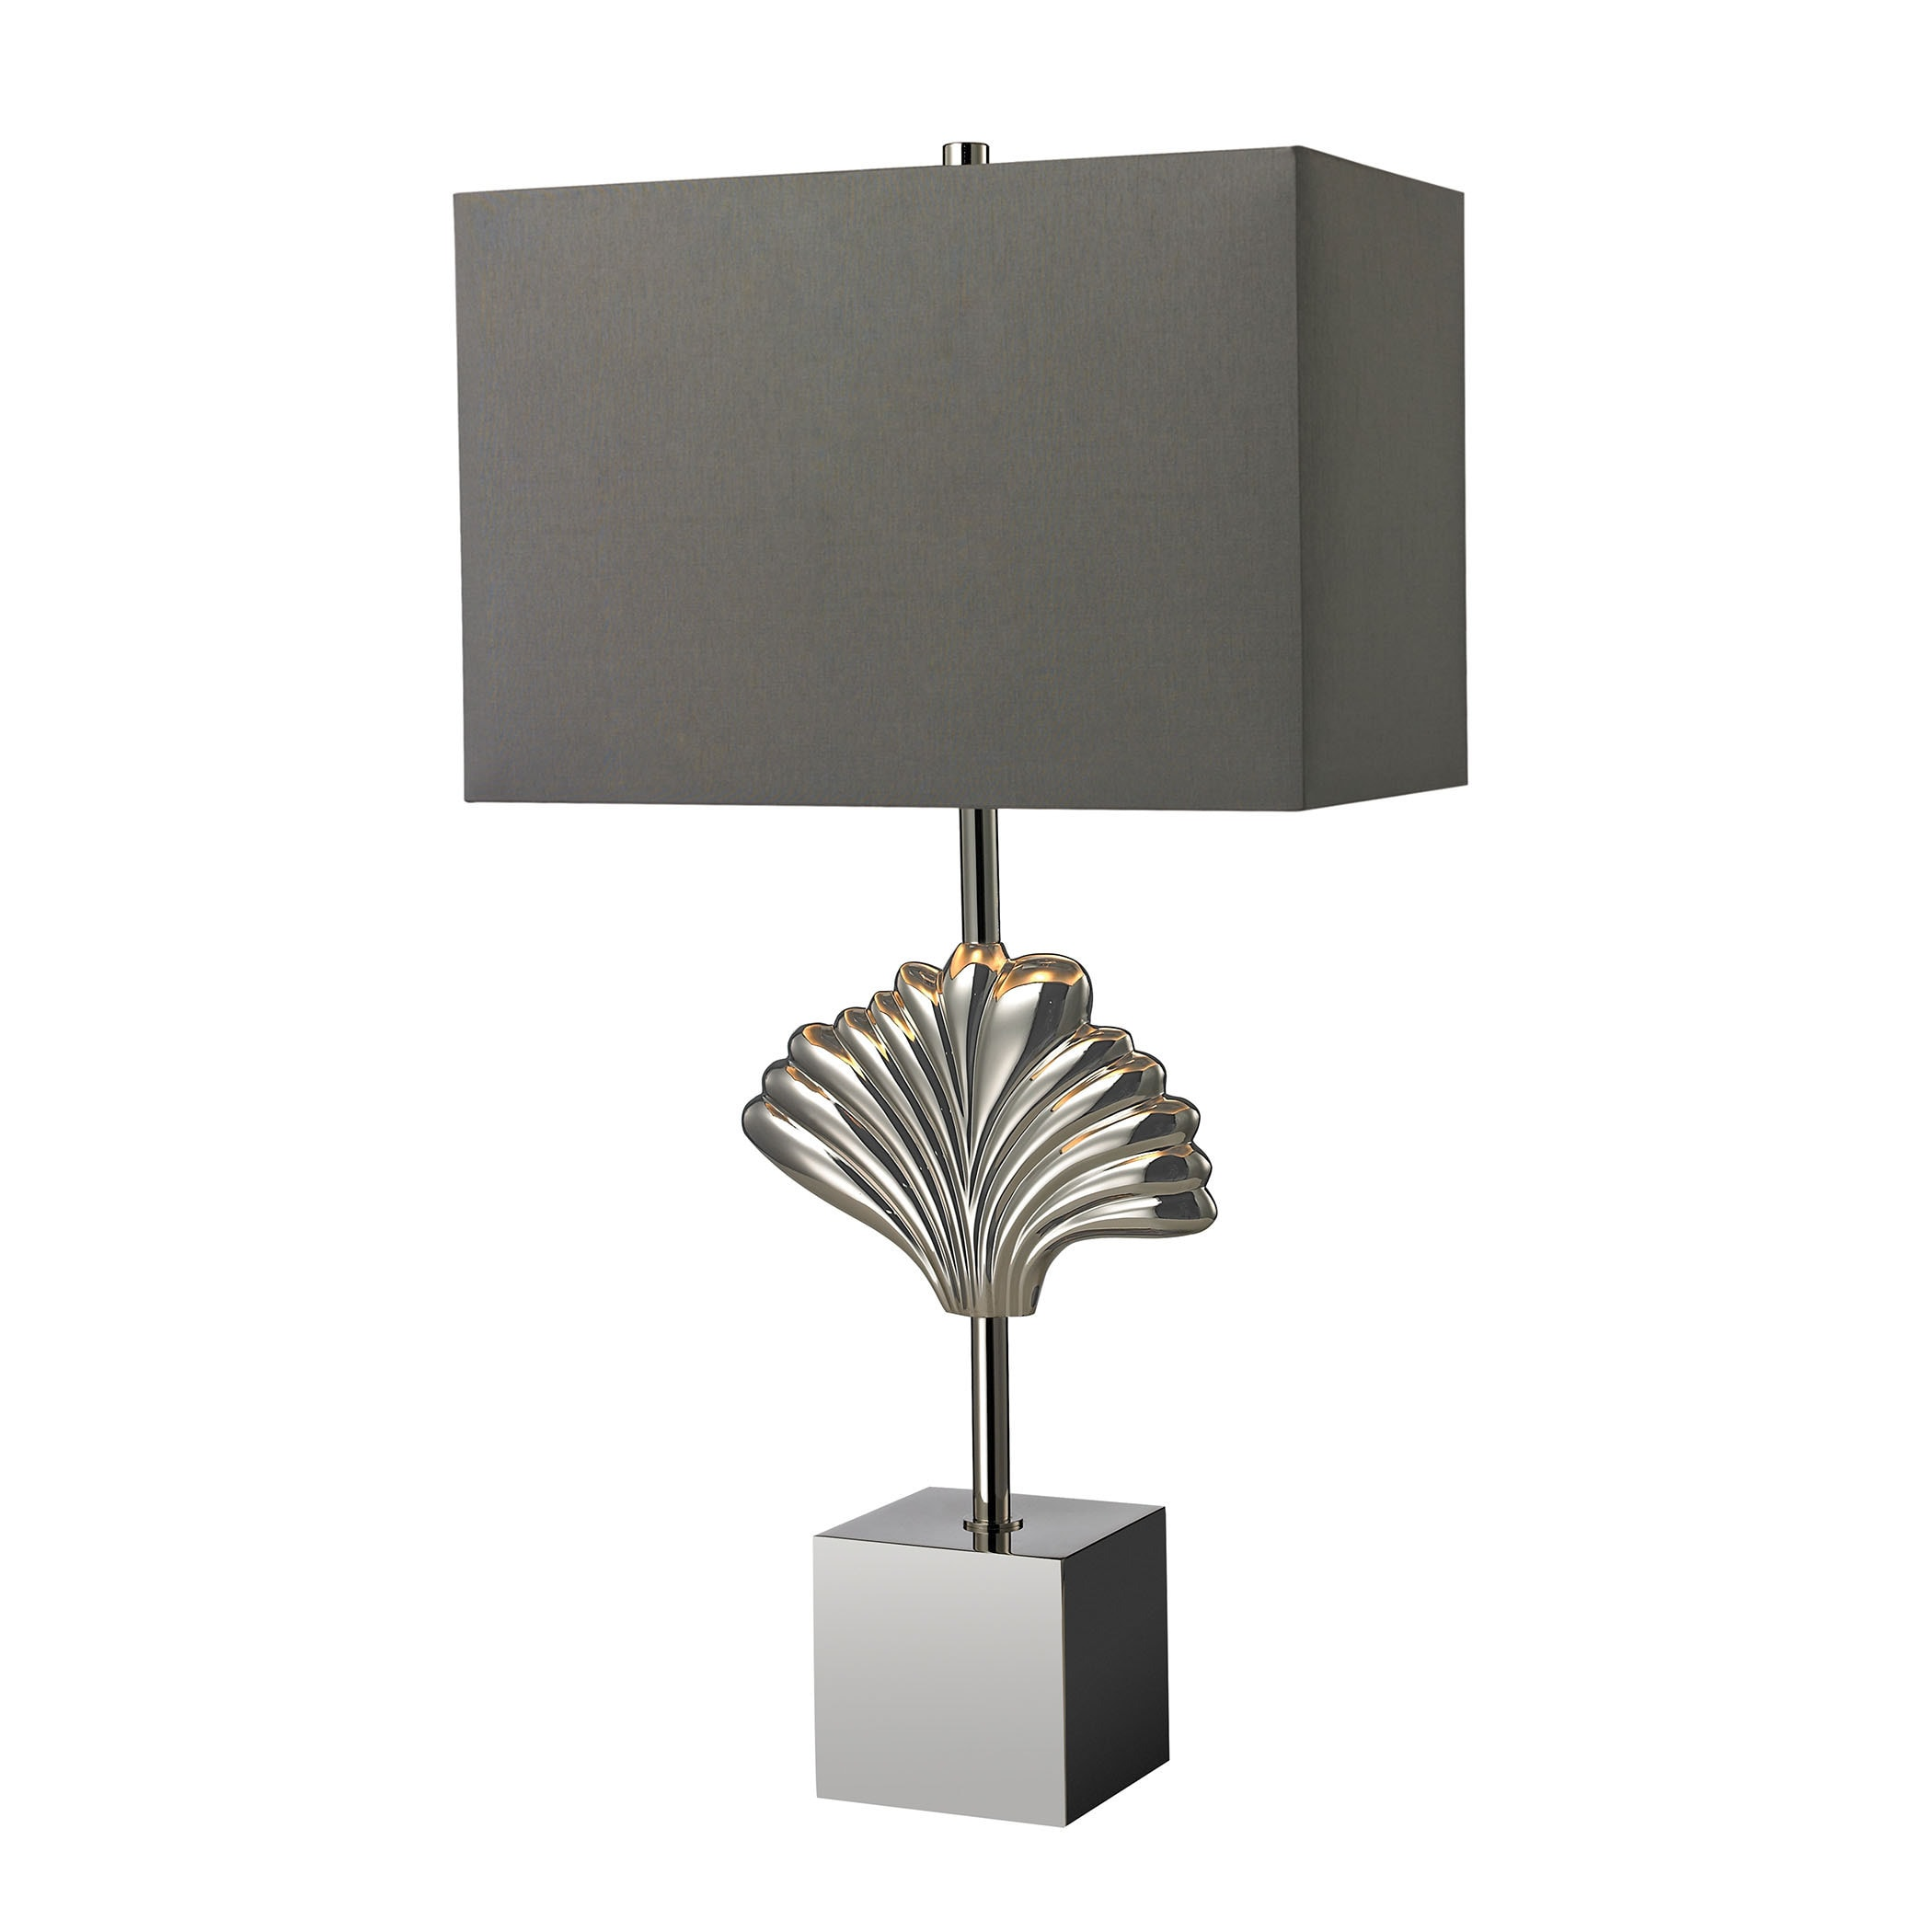 Dimond Vergato Solid Brass Polished Chrome Table Lamp